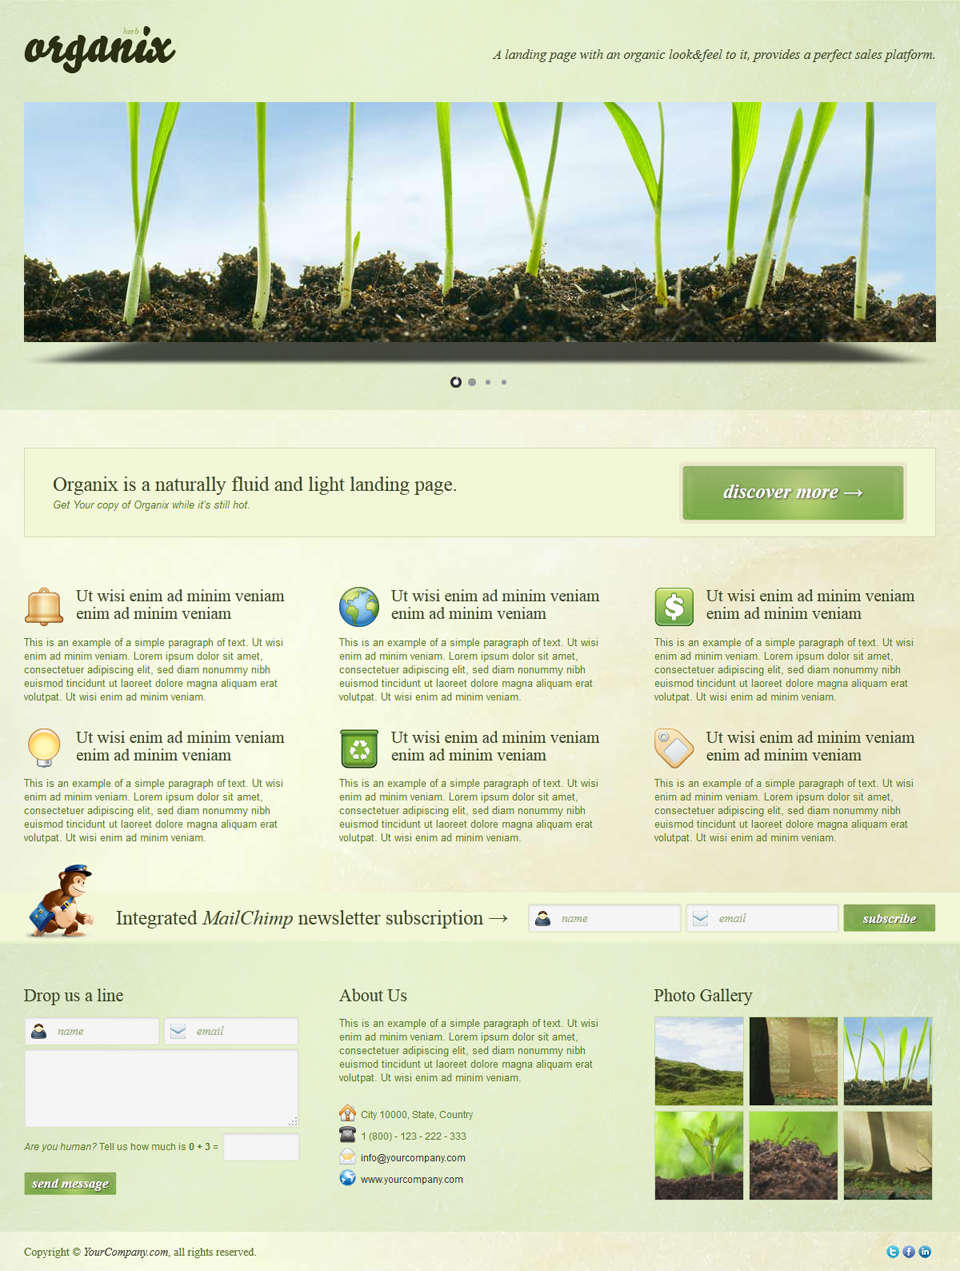 Organix - Simple Product Oriented Landing Page - Organix - Herb 3D Slider